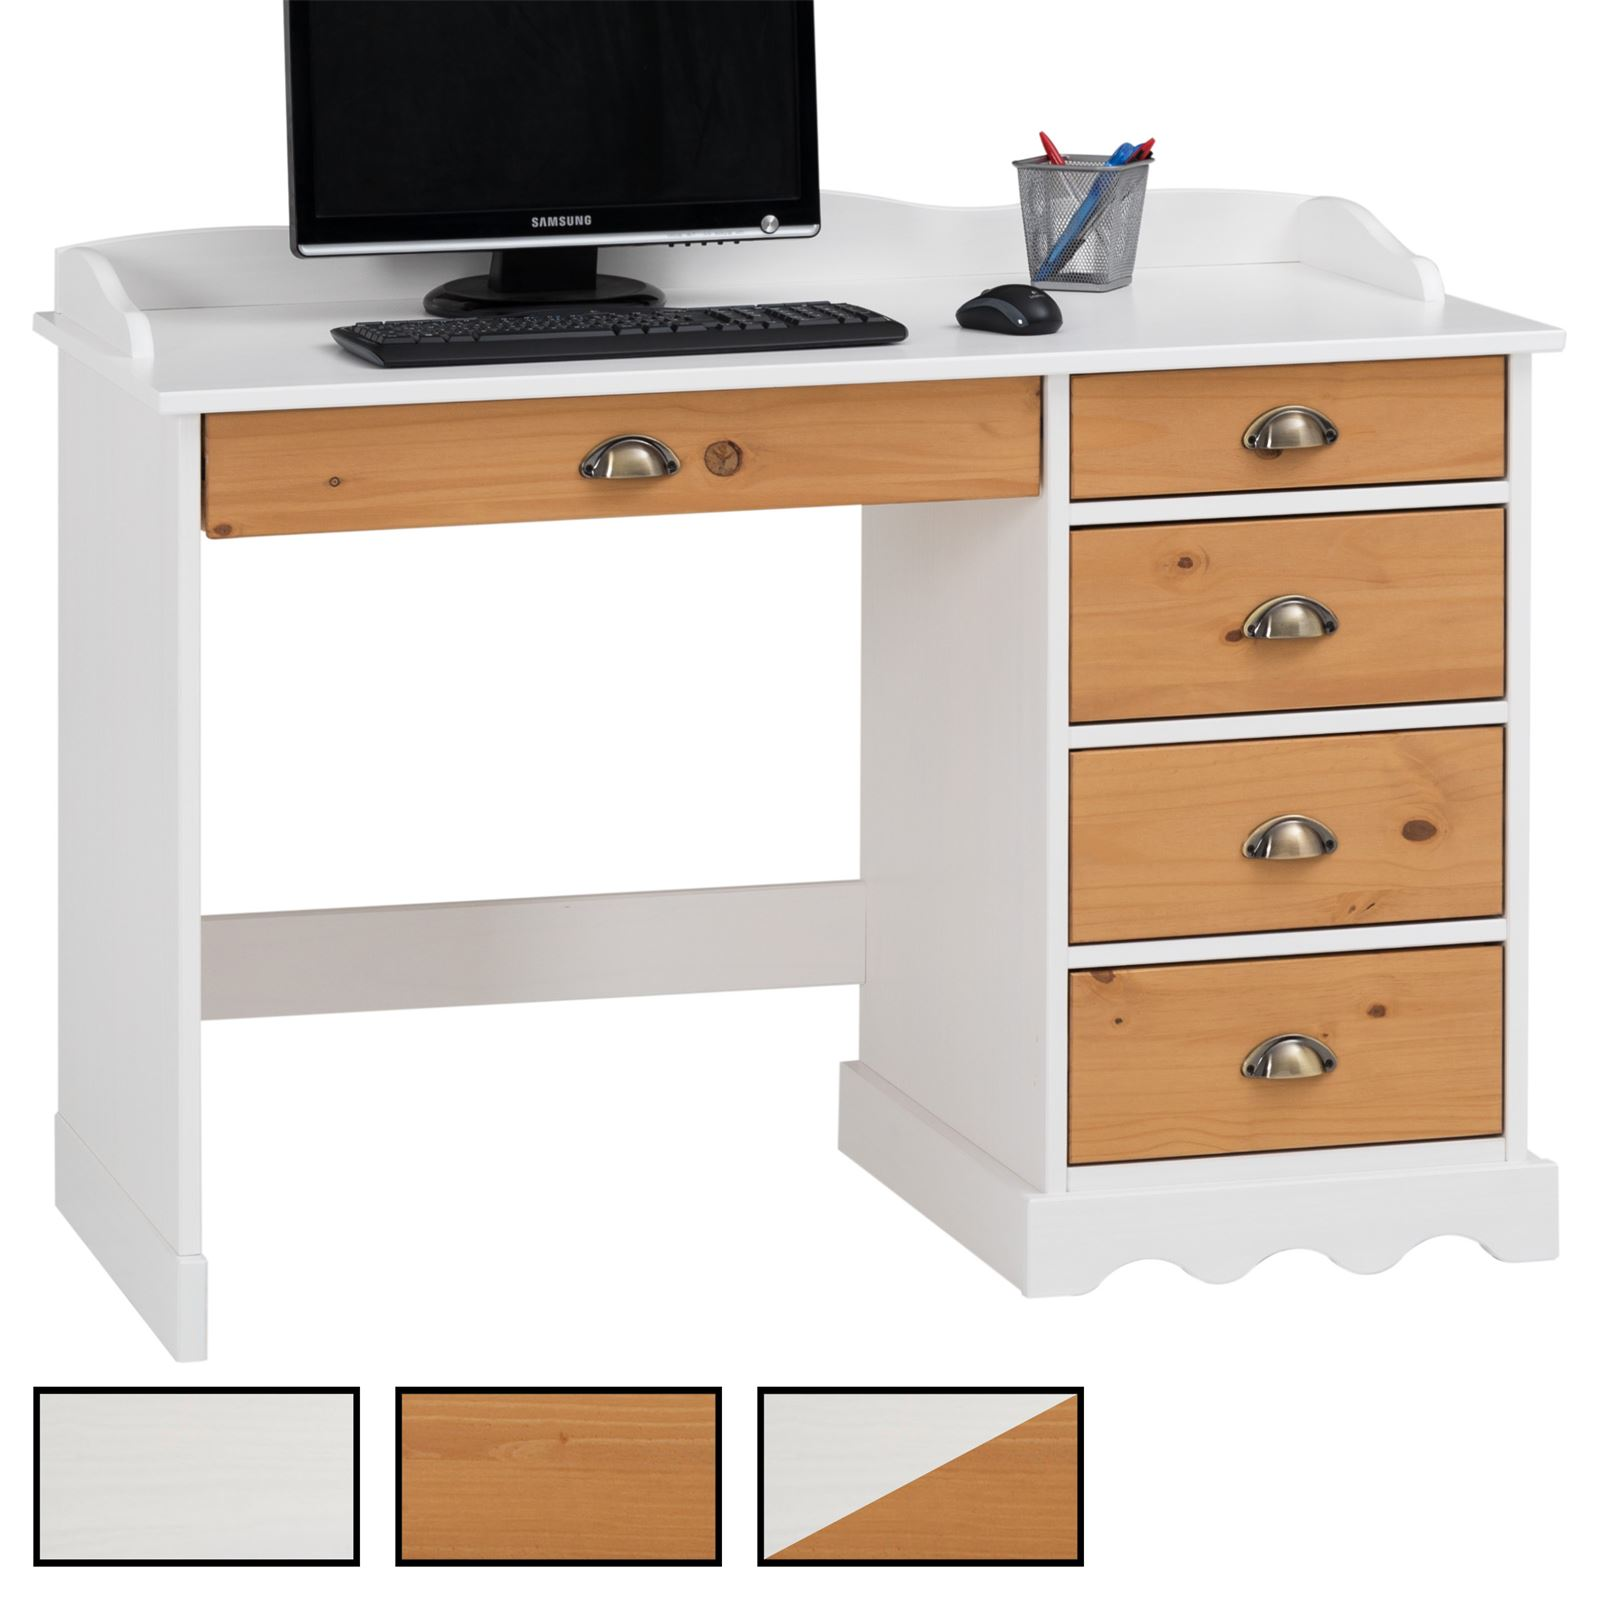 bureau en pin massif colette avec corniche mobilia24. Black Bedroom Furniture Sets. Home Design Ideas